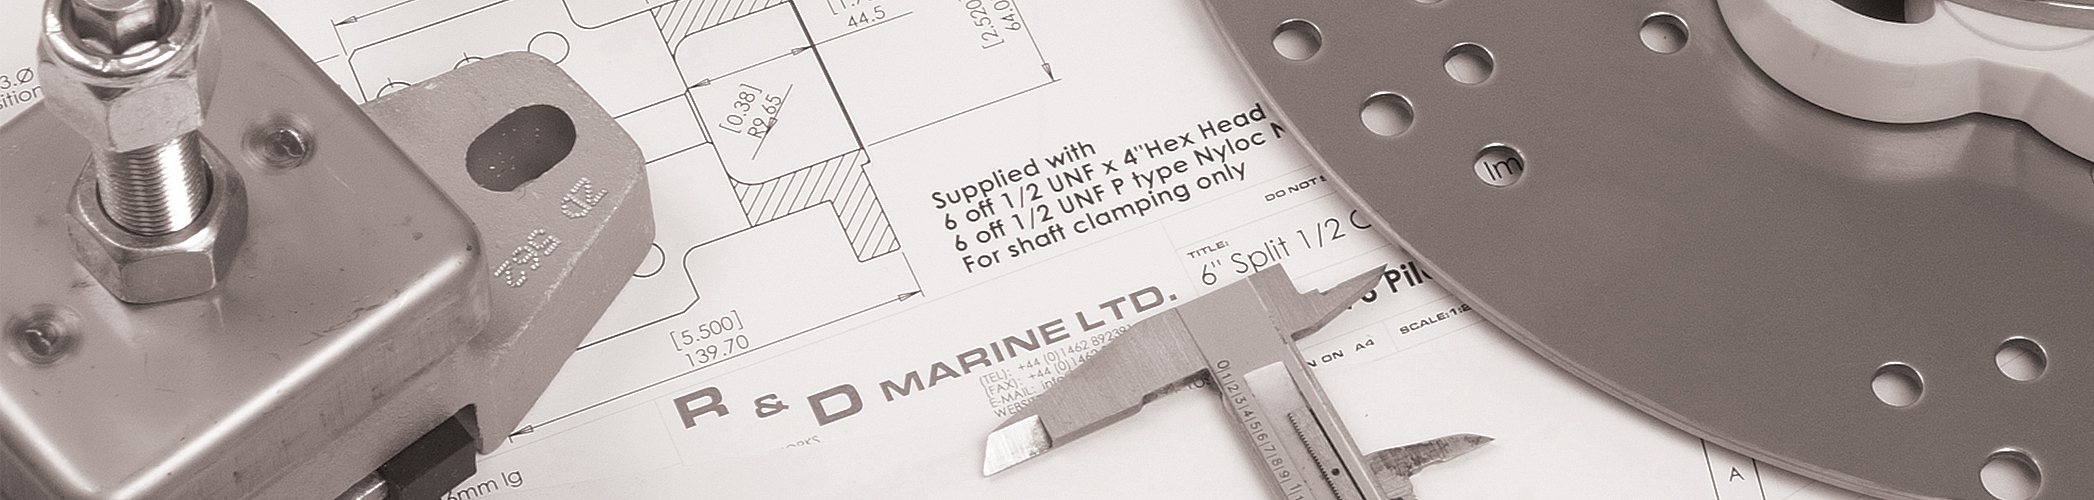 R&D Marine product banner